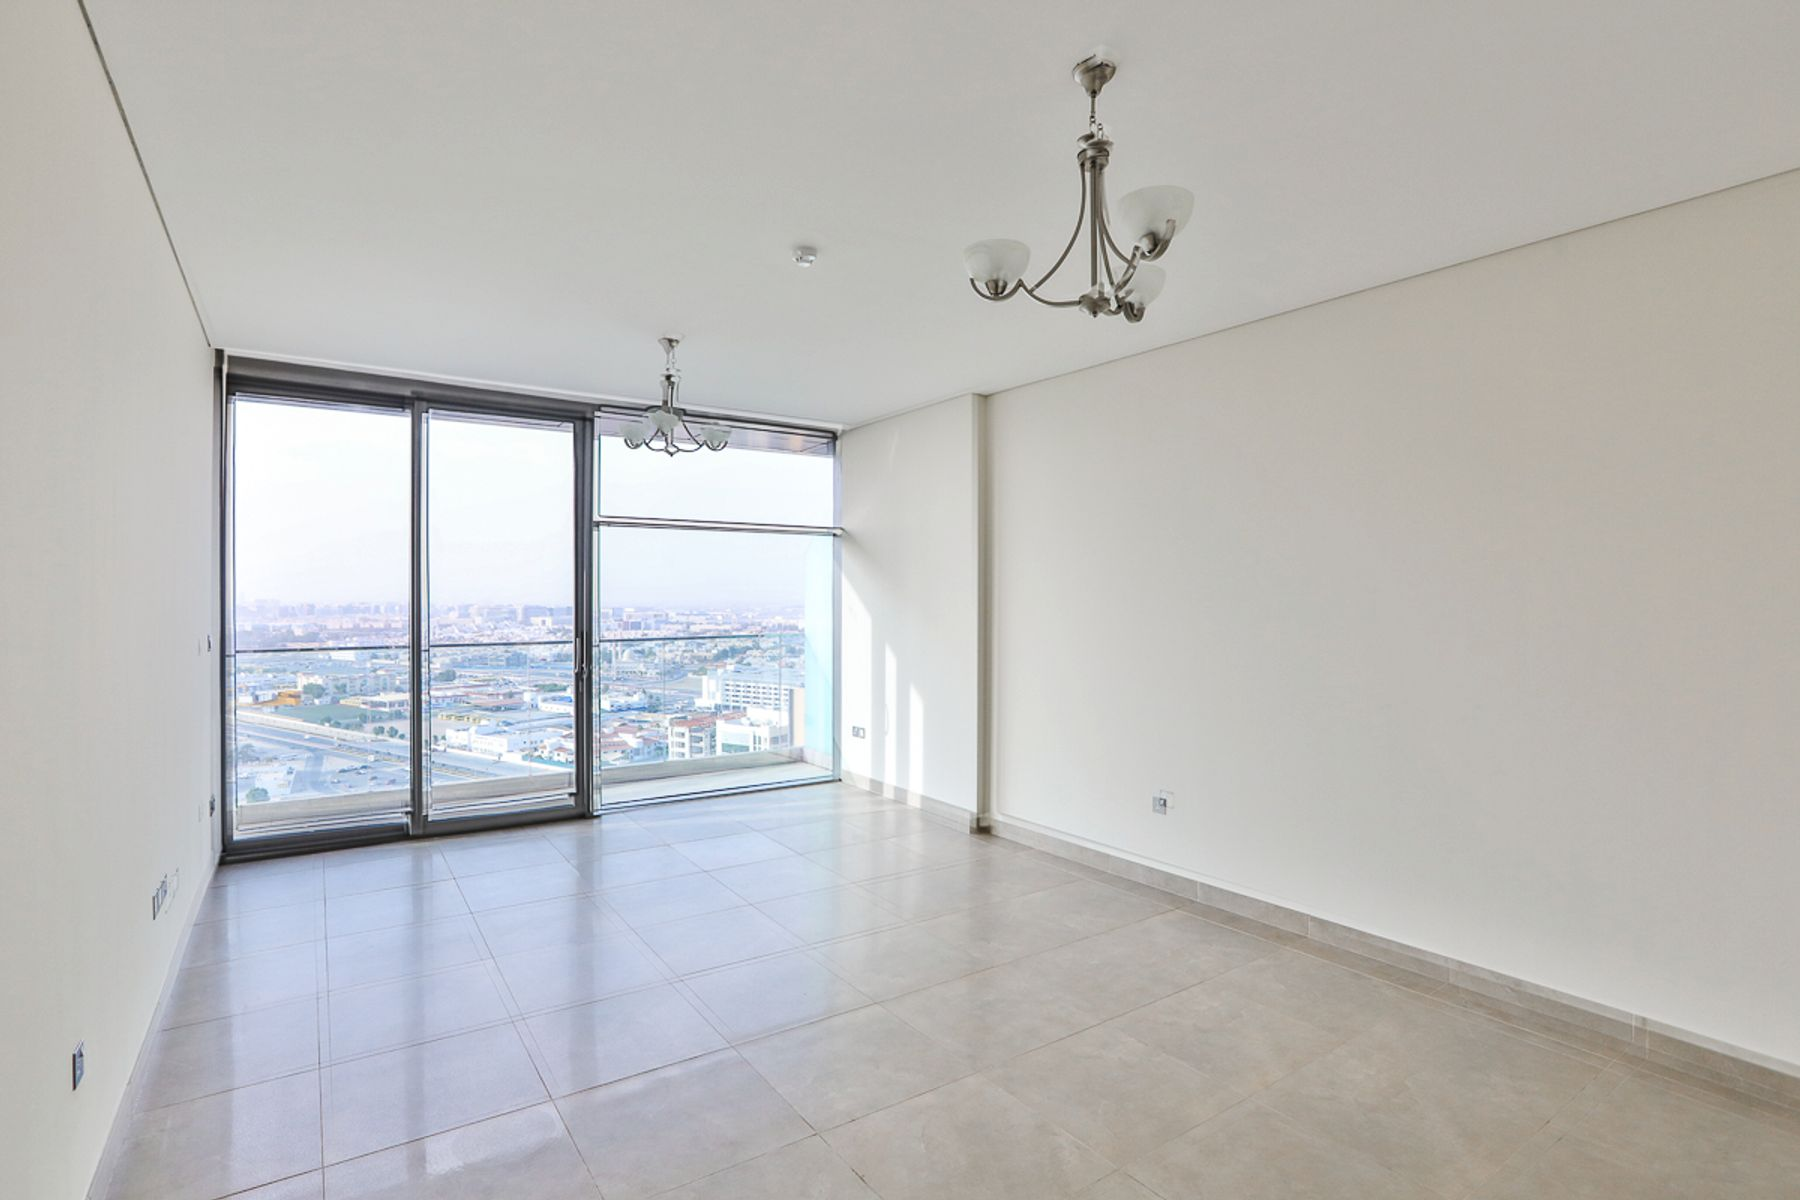 Apartment for Rent in Al Fattan Sky Tower 1 - Umm Ramool